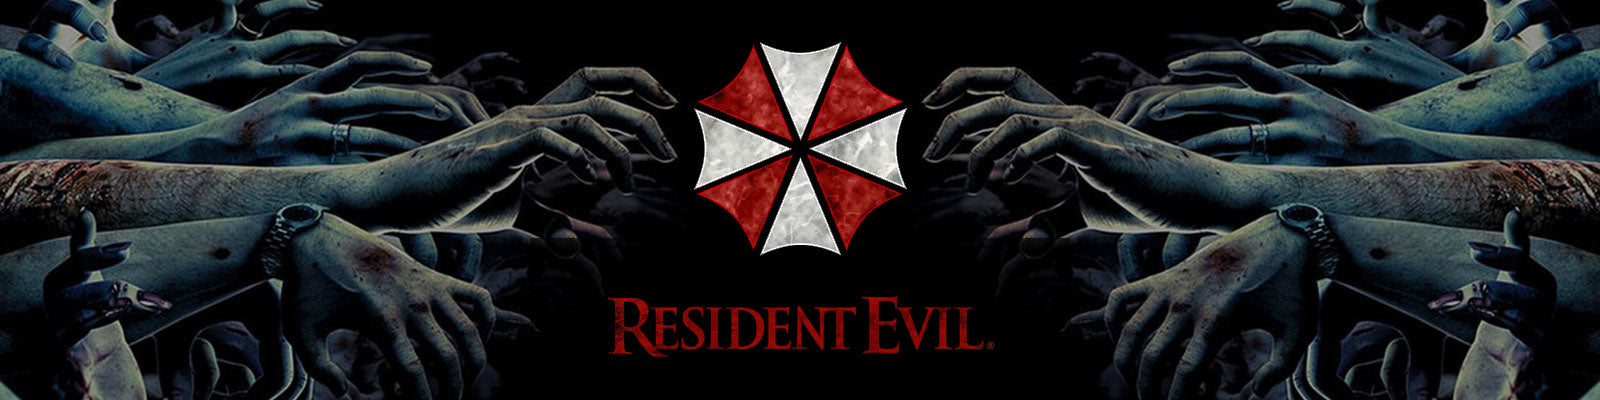 resident evil meister watches